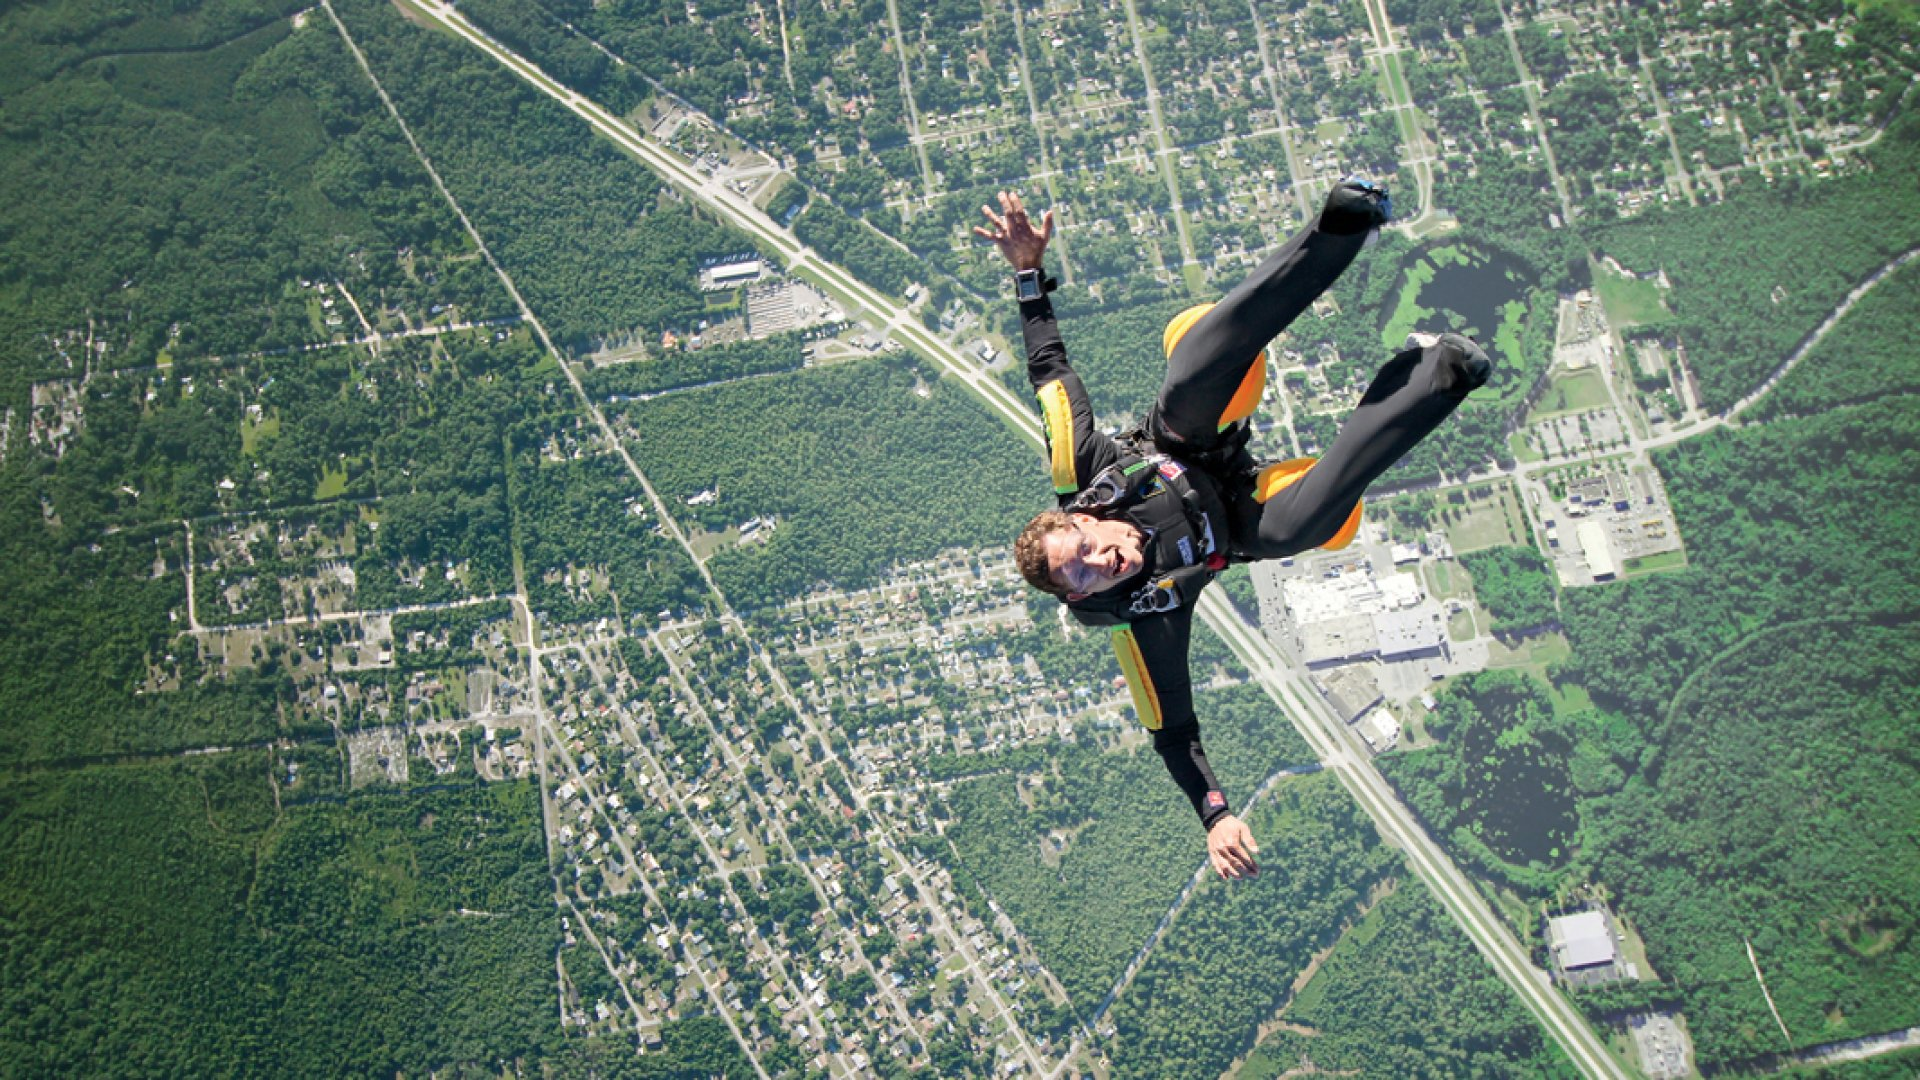 Brad Weinberg, several thousand feet above Central Florida, where he often trains with his skydiving team.